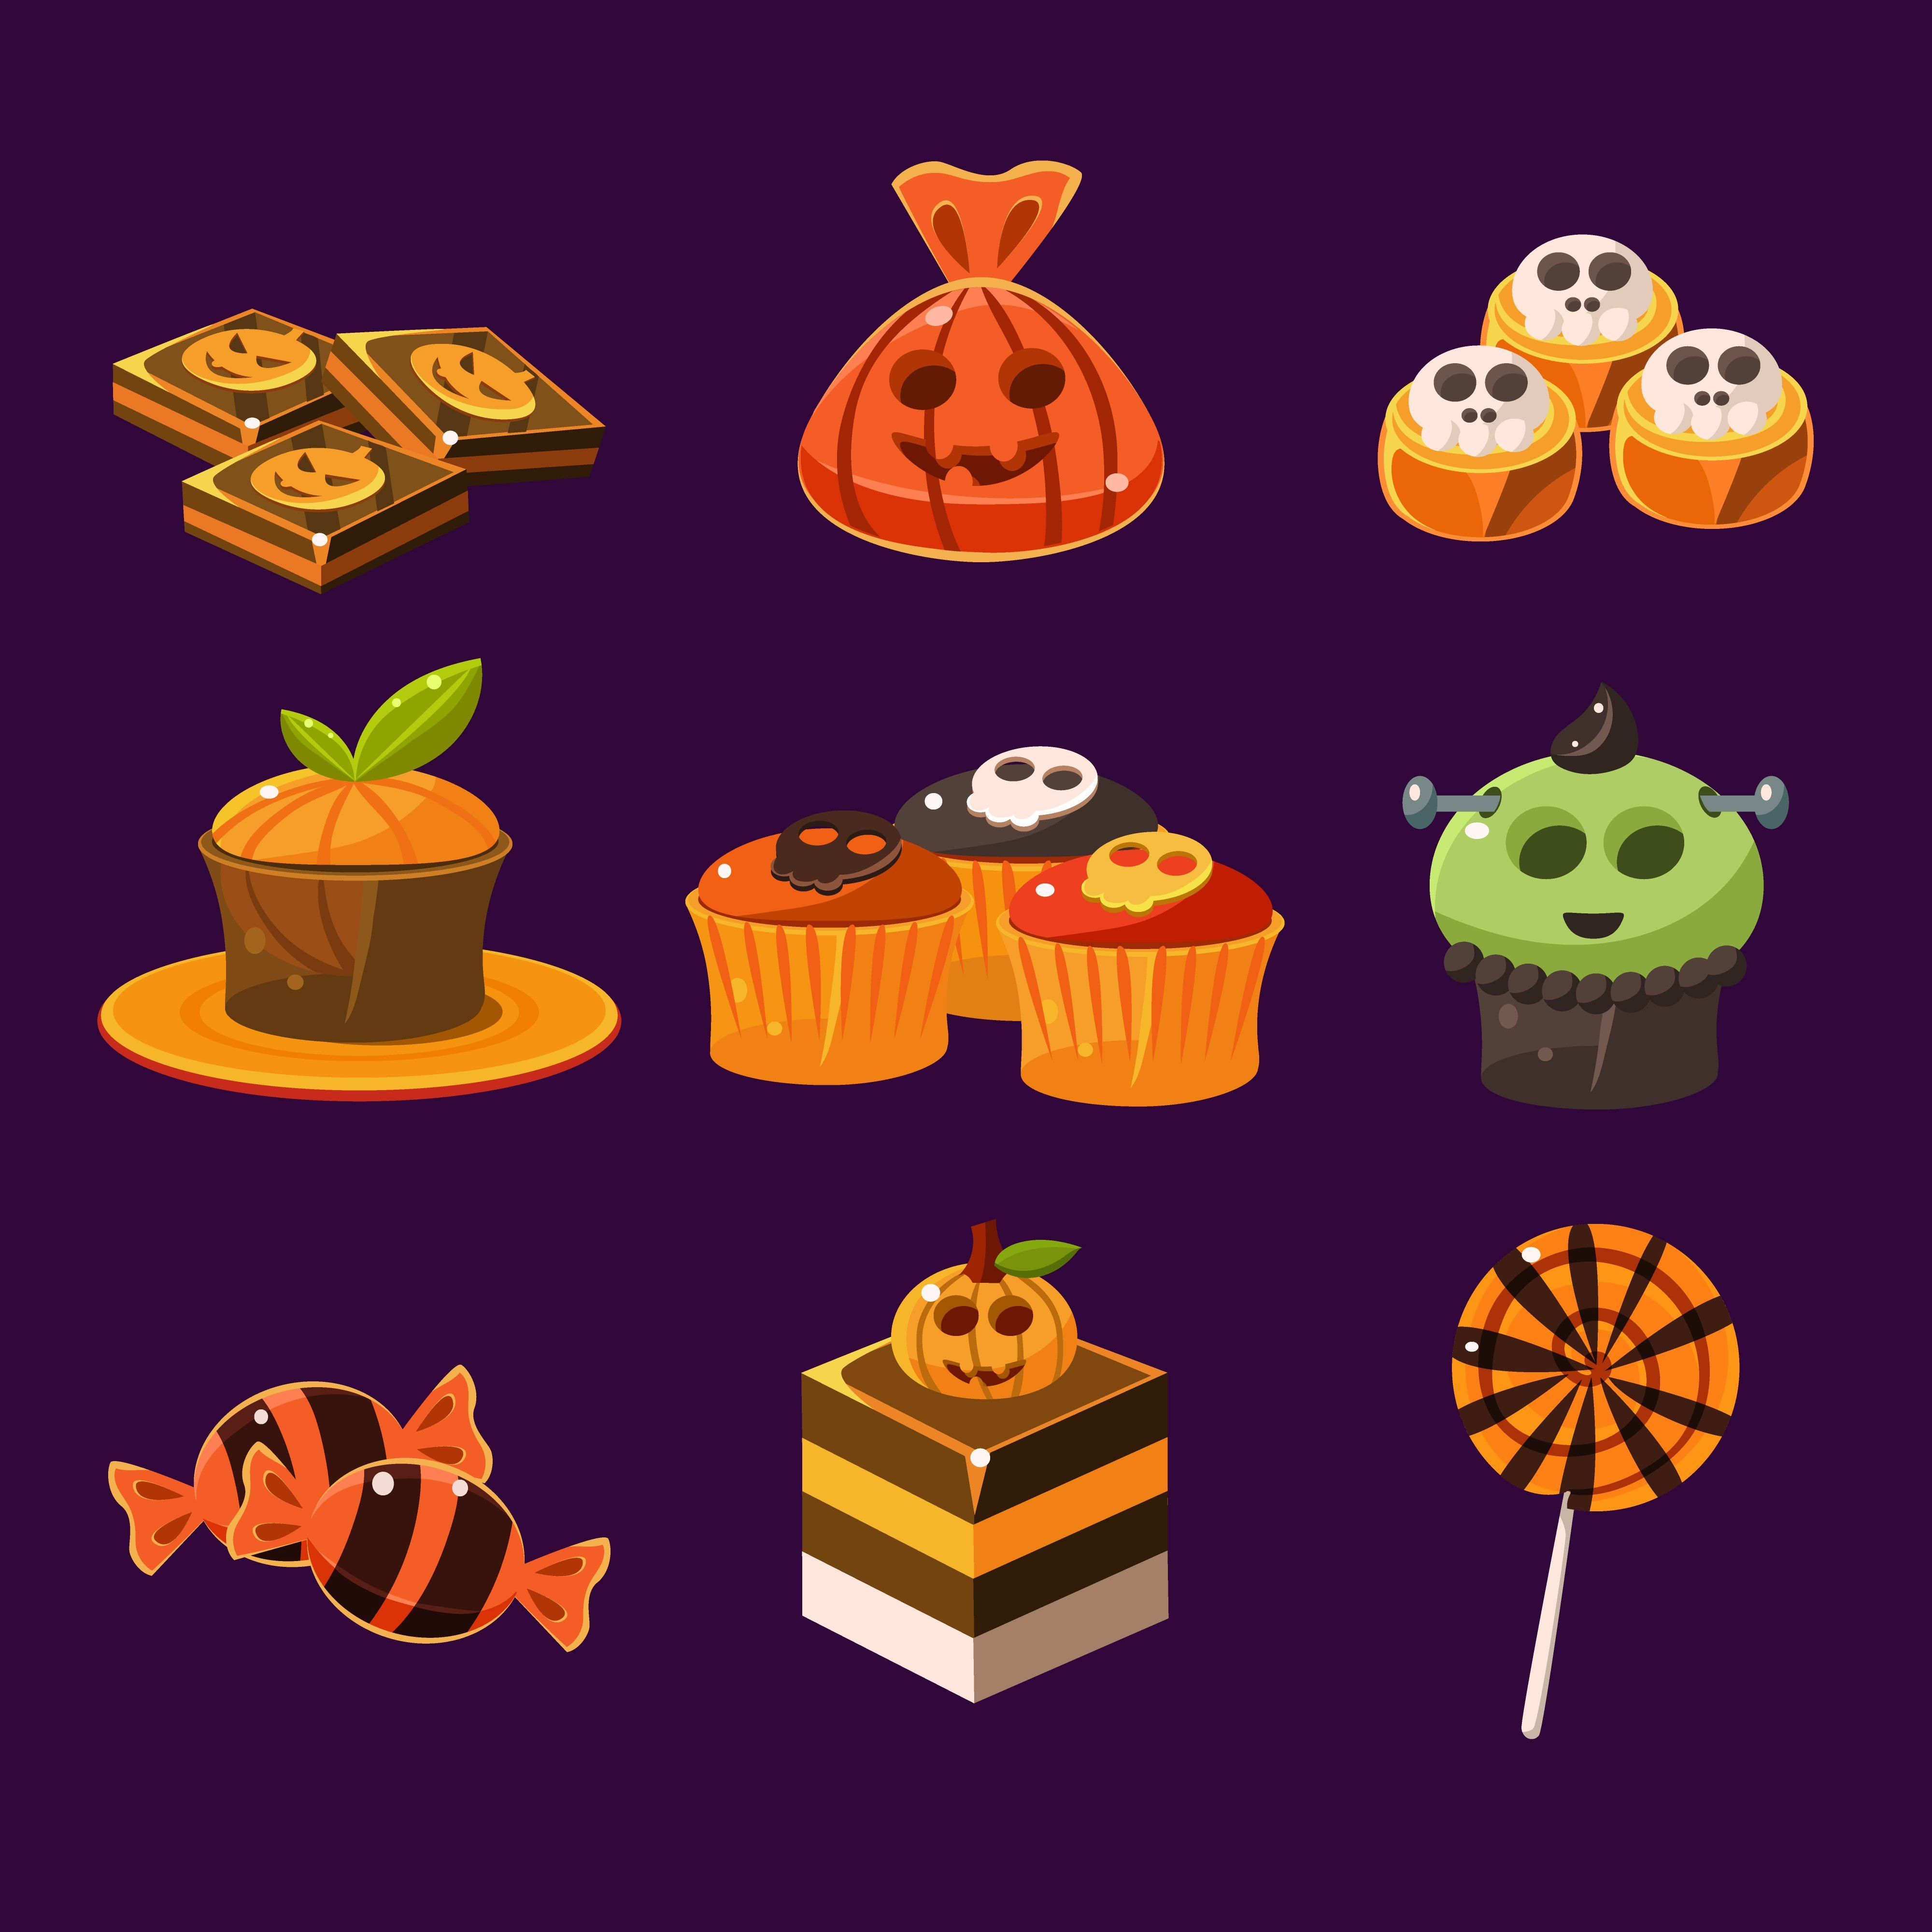 Halloween Sweets And Candies Halloween Sweets Halloween Templates Candy Icon